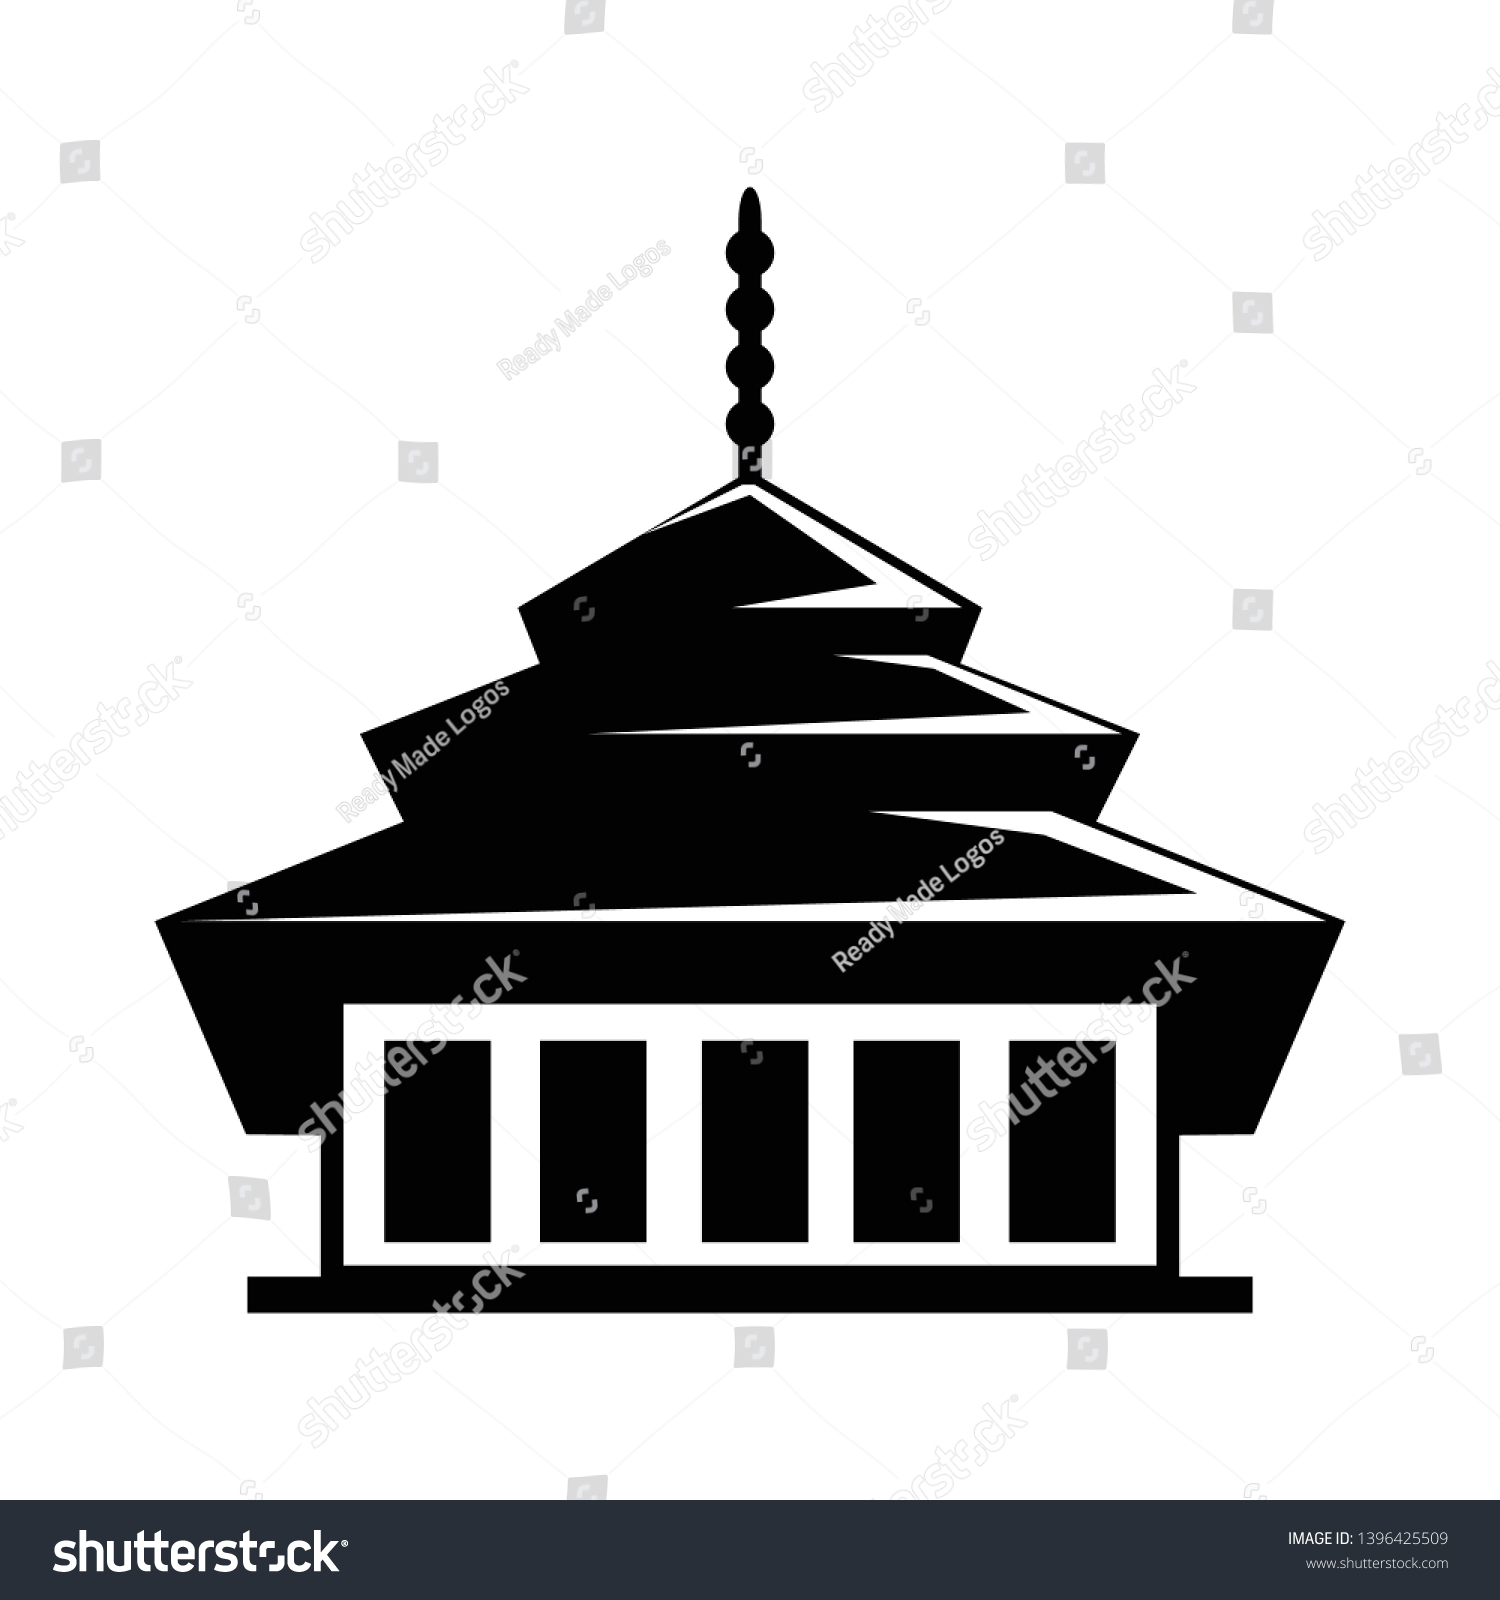 gedung sate landmark building bandung west stock vector royalty free 1396425509 https www shutterstock com image vector gedung sate landmark building bandung west 1396425509